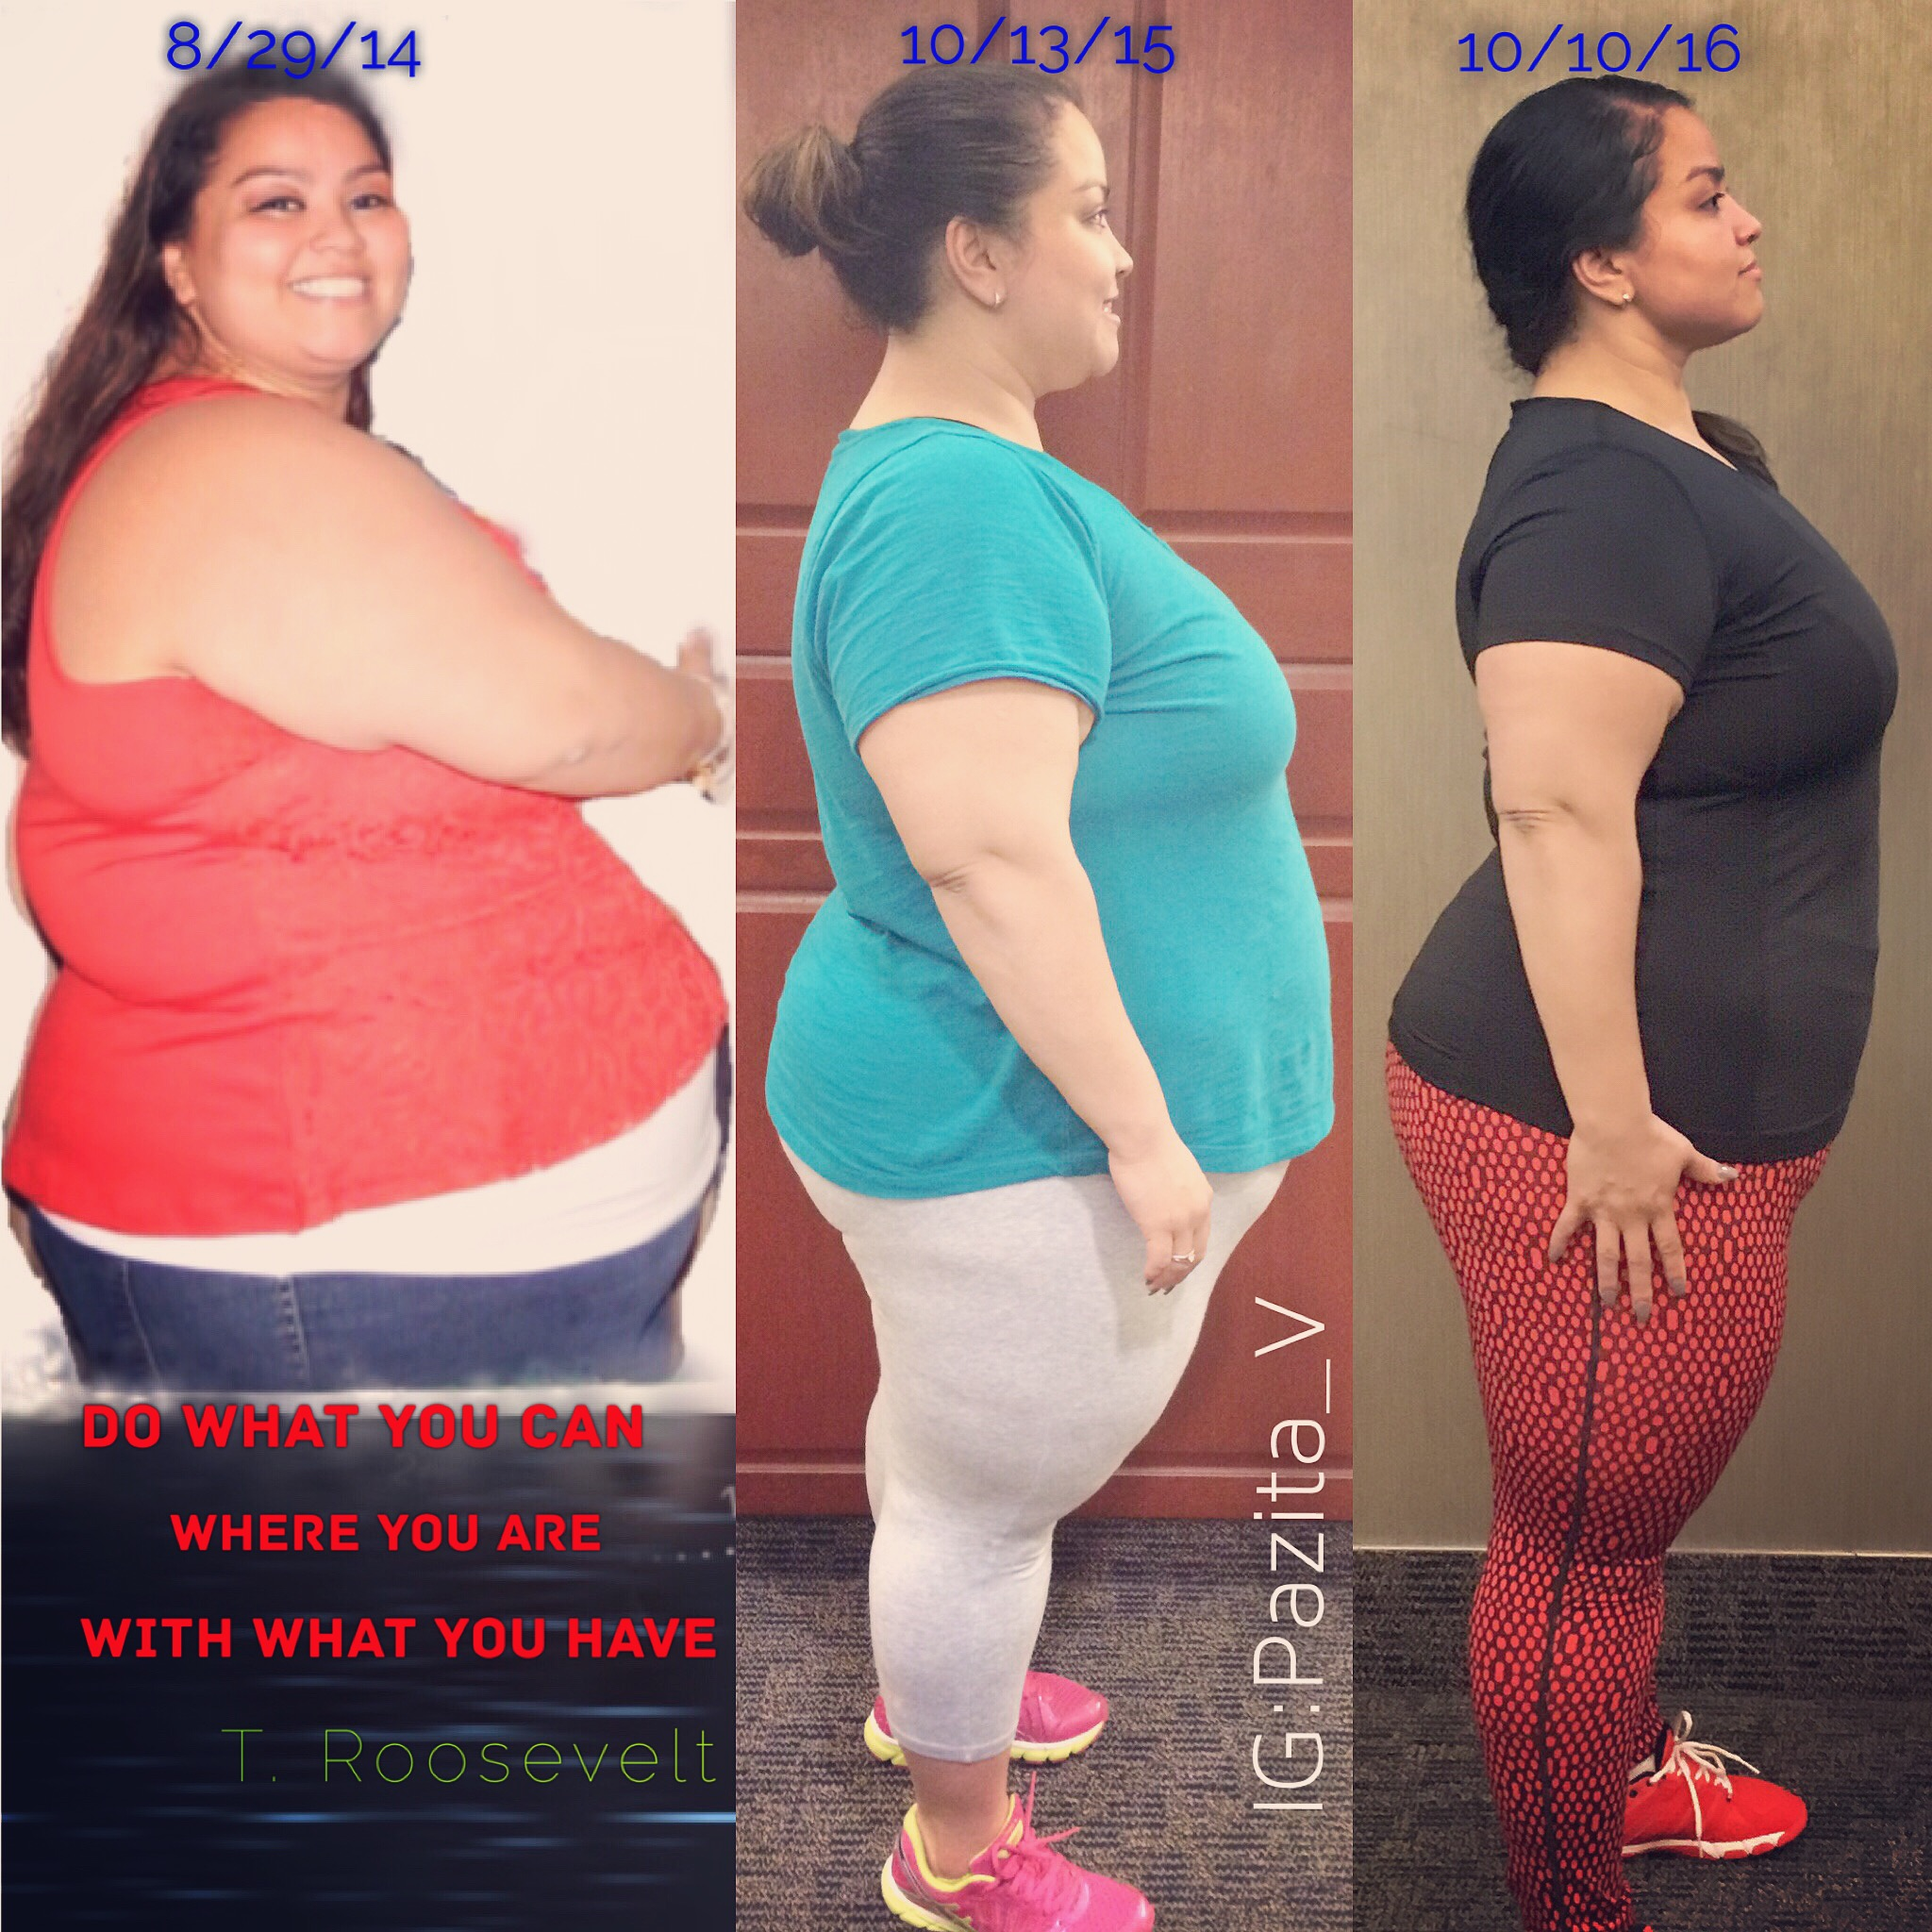 Great success story! Read before and after fitness transformation stories from women and men who hit weight loss goals and got THAT BODY with training and meal prep. Find inspiration, motivation, and workout tips | 110 Pounds Lost: I did it for ME